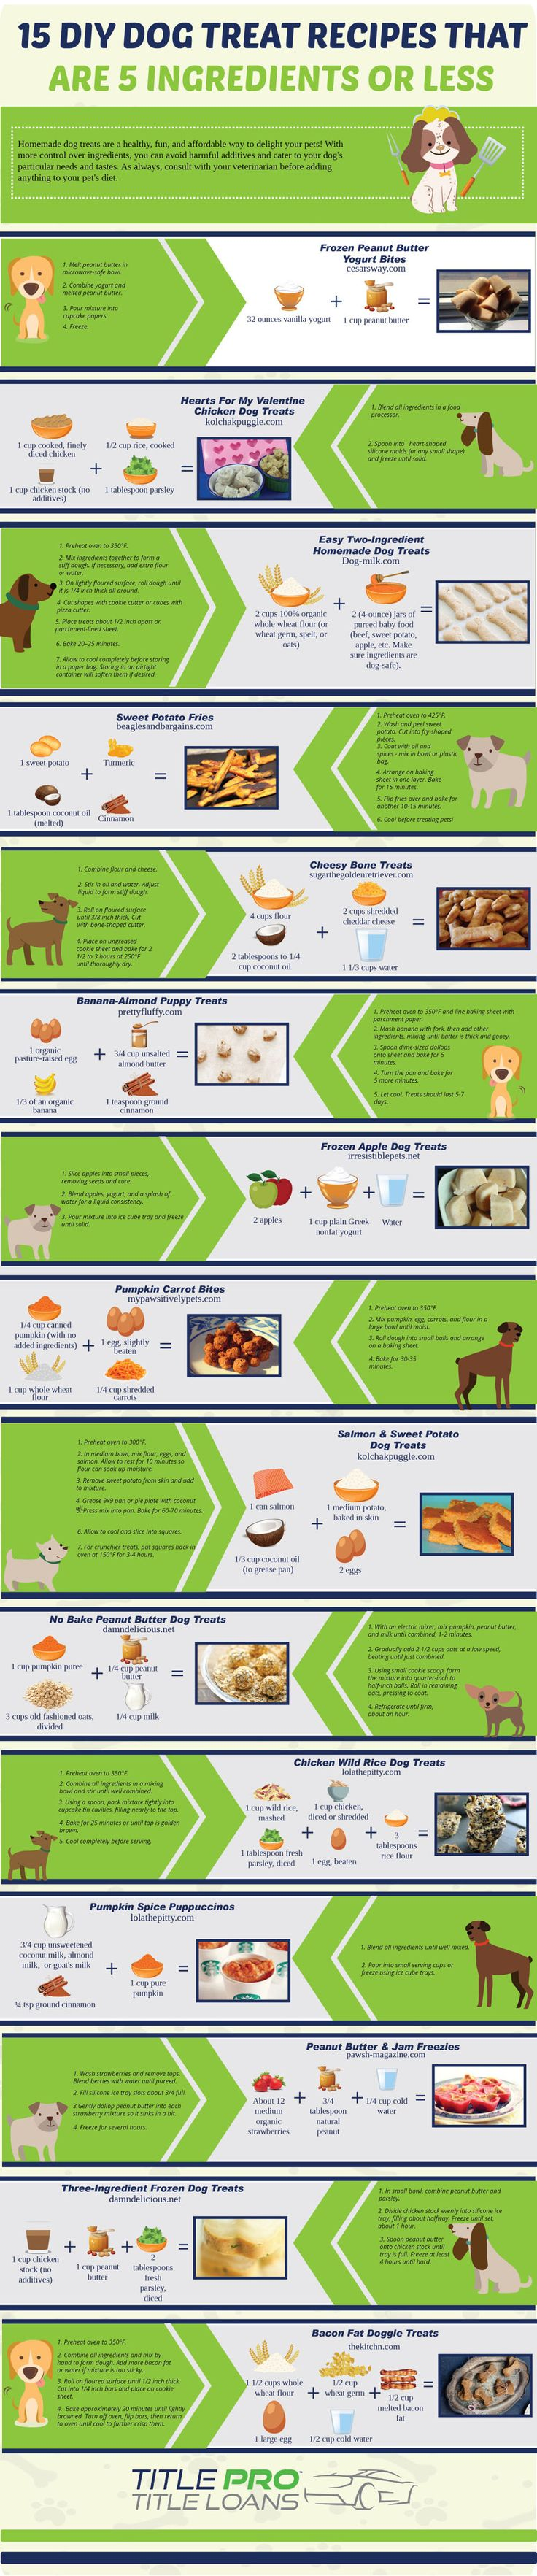 DIY Dog Treat Recipes That Are 5 Ingredients or Less